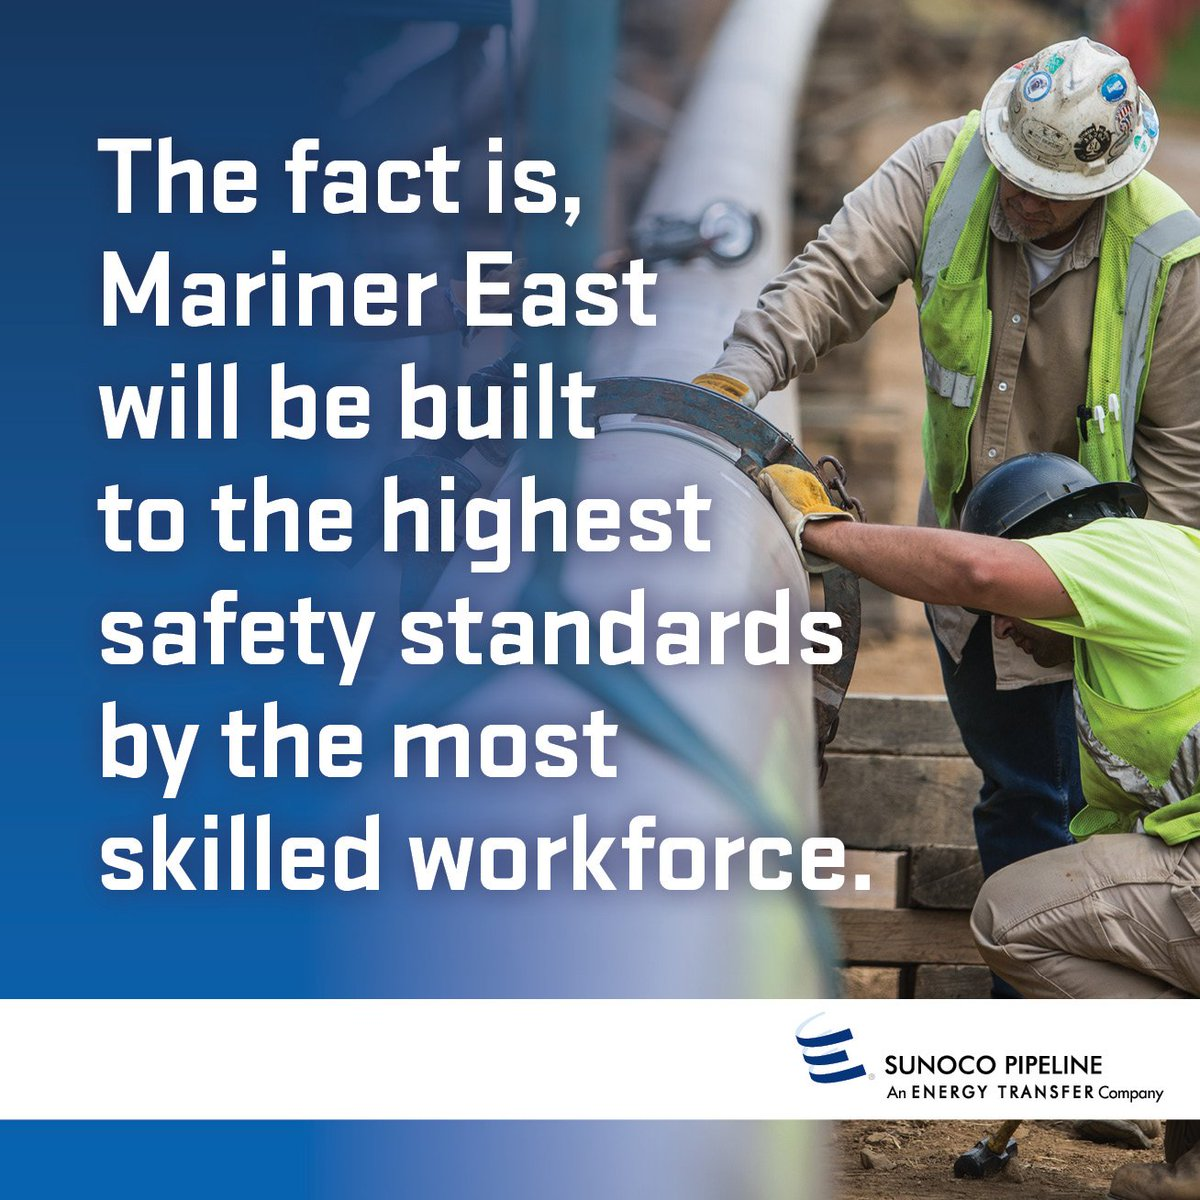 Don&#39;t be misled: Get the facts. Community, employee #safety a top priority for Mariner East! Read @delcotimes LTE:  http:// ow.ly/hthM30cUrMG  &nbsp;  <br>http://pic.twitter.com/xZub5bp9Cj